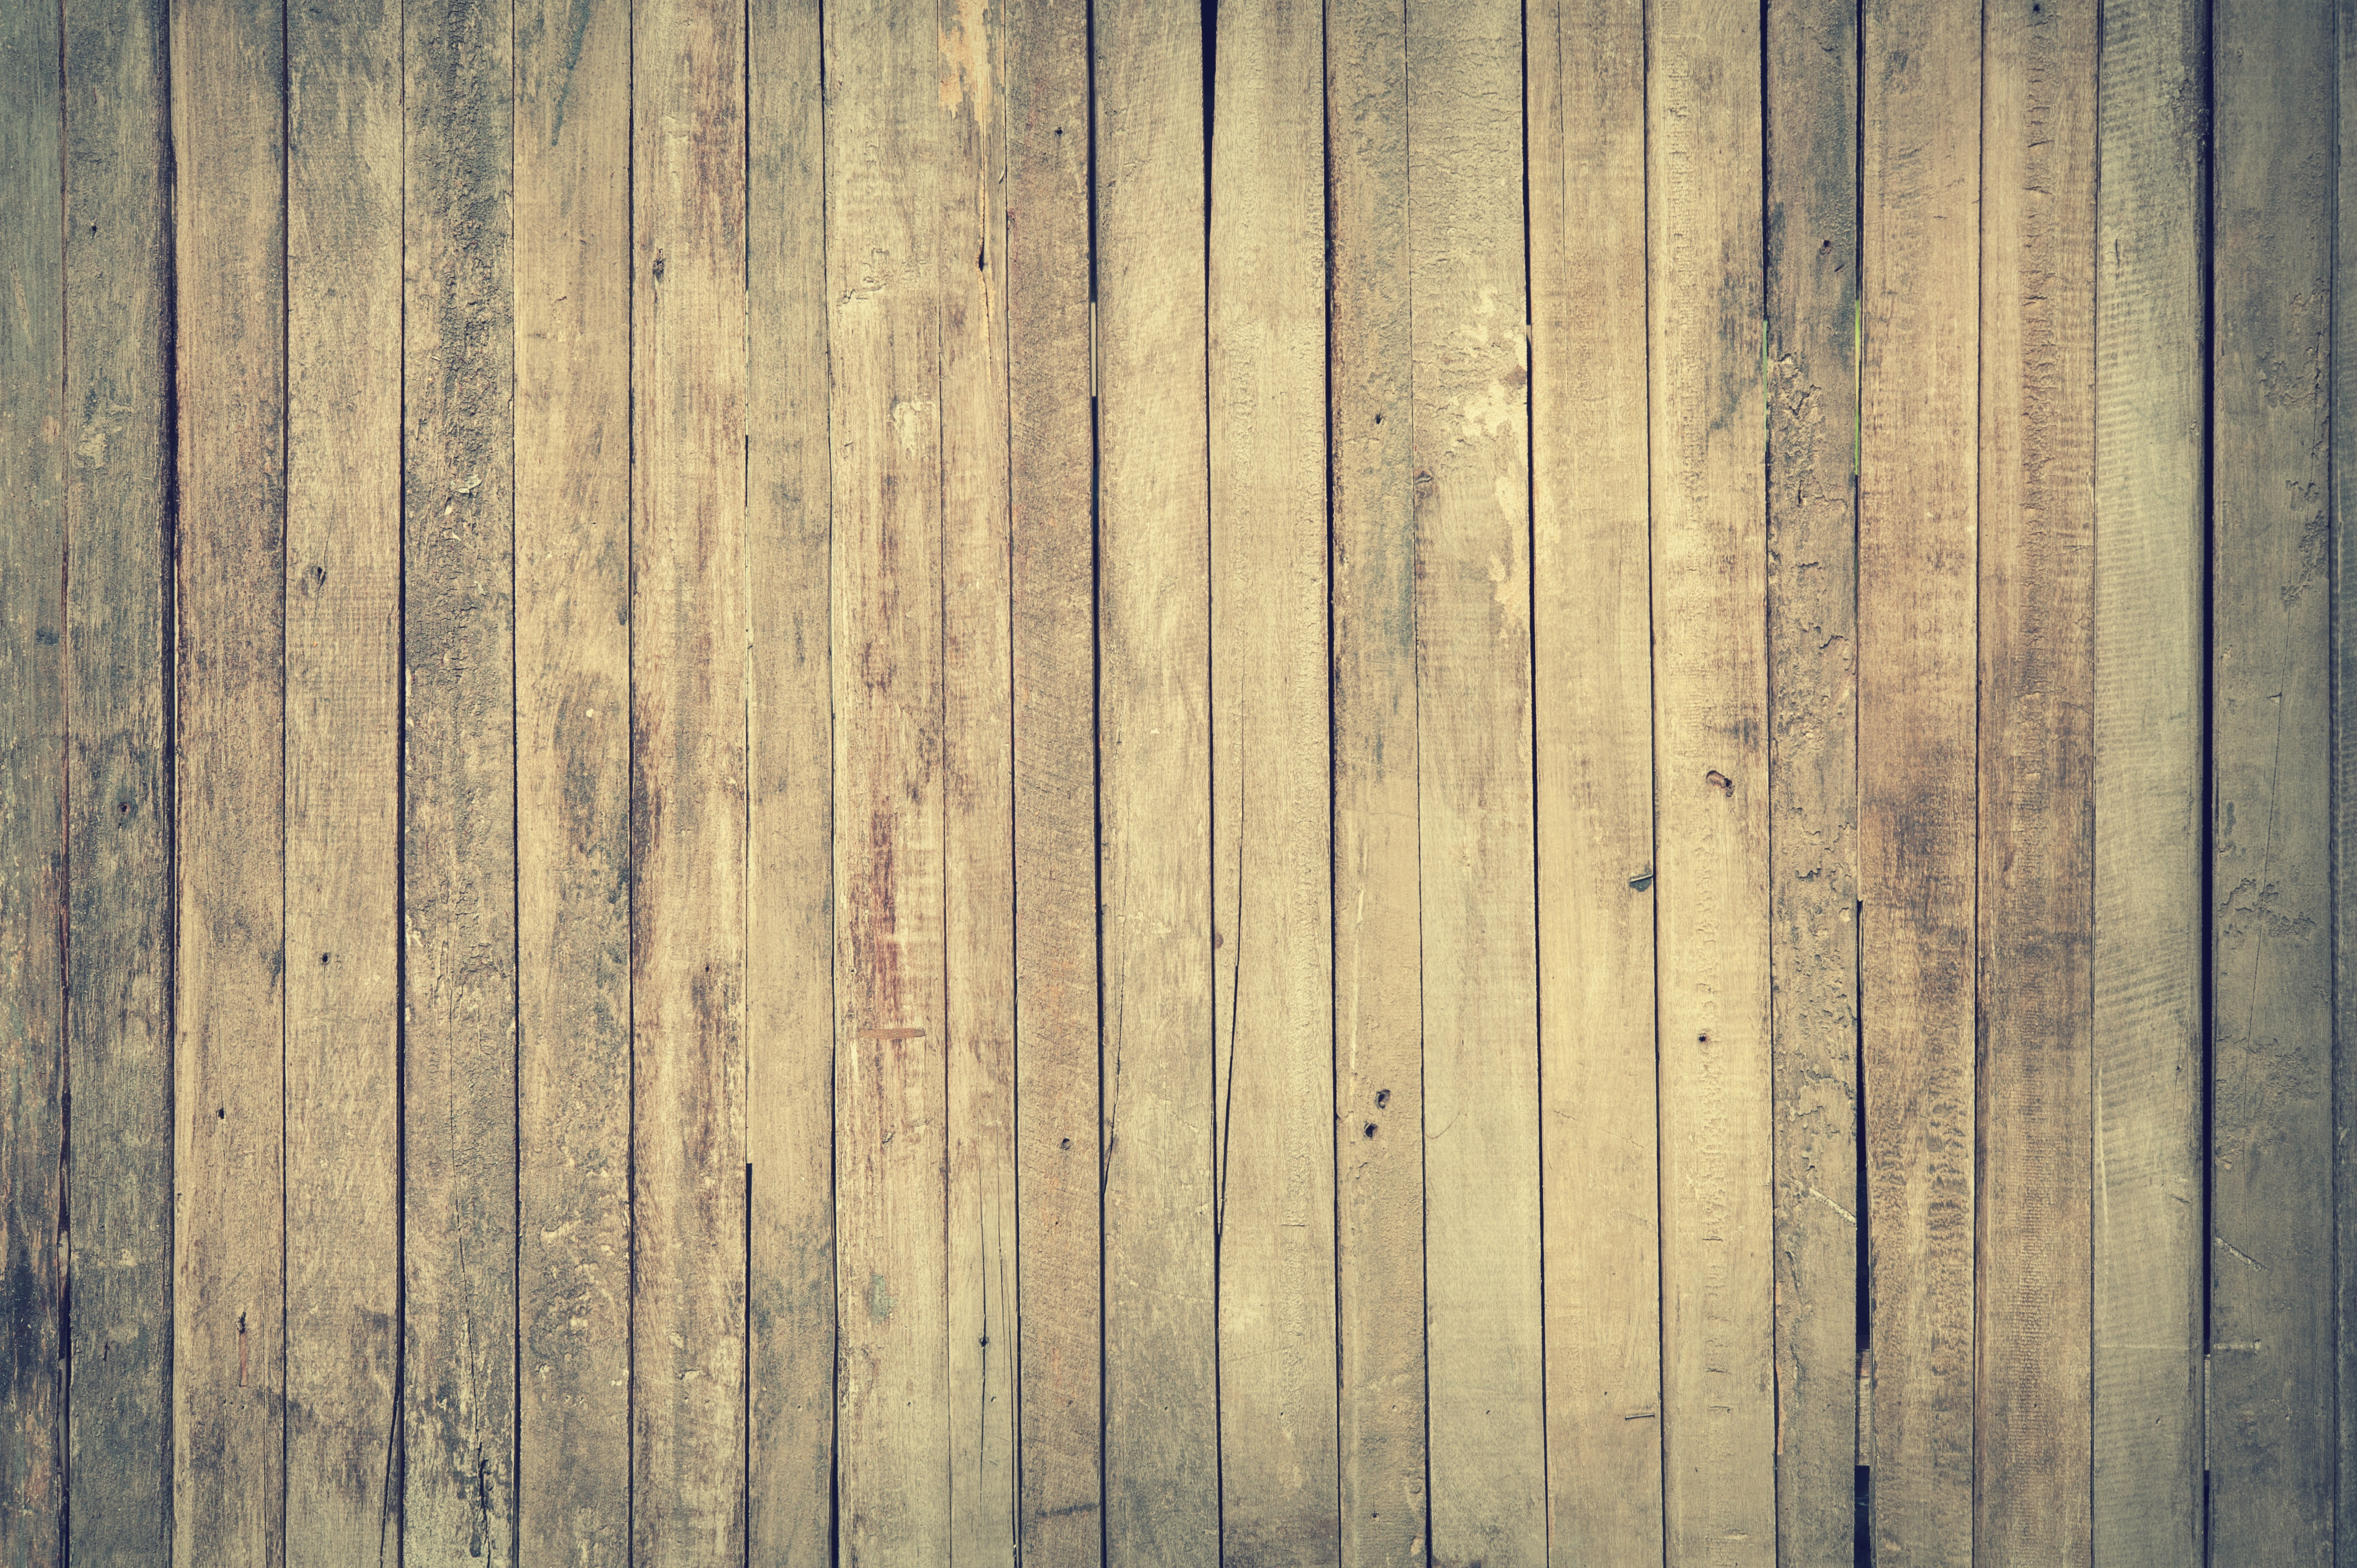 Brown Wooden Fence, Board, Pattern, Wood, Wall, HQ Photo